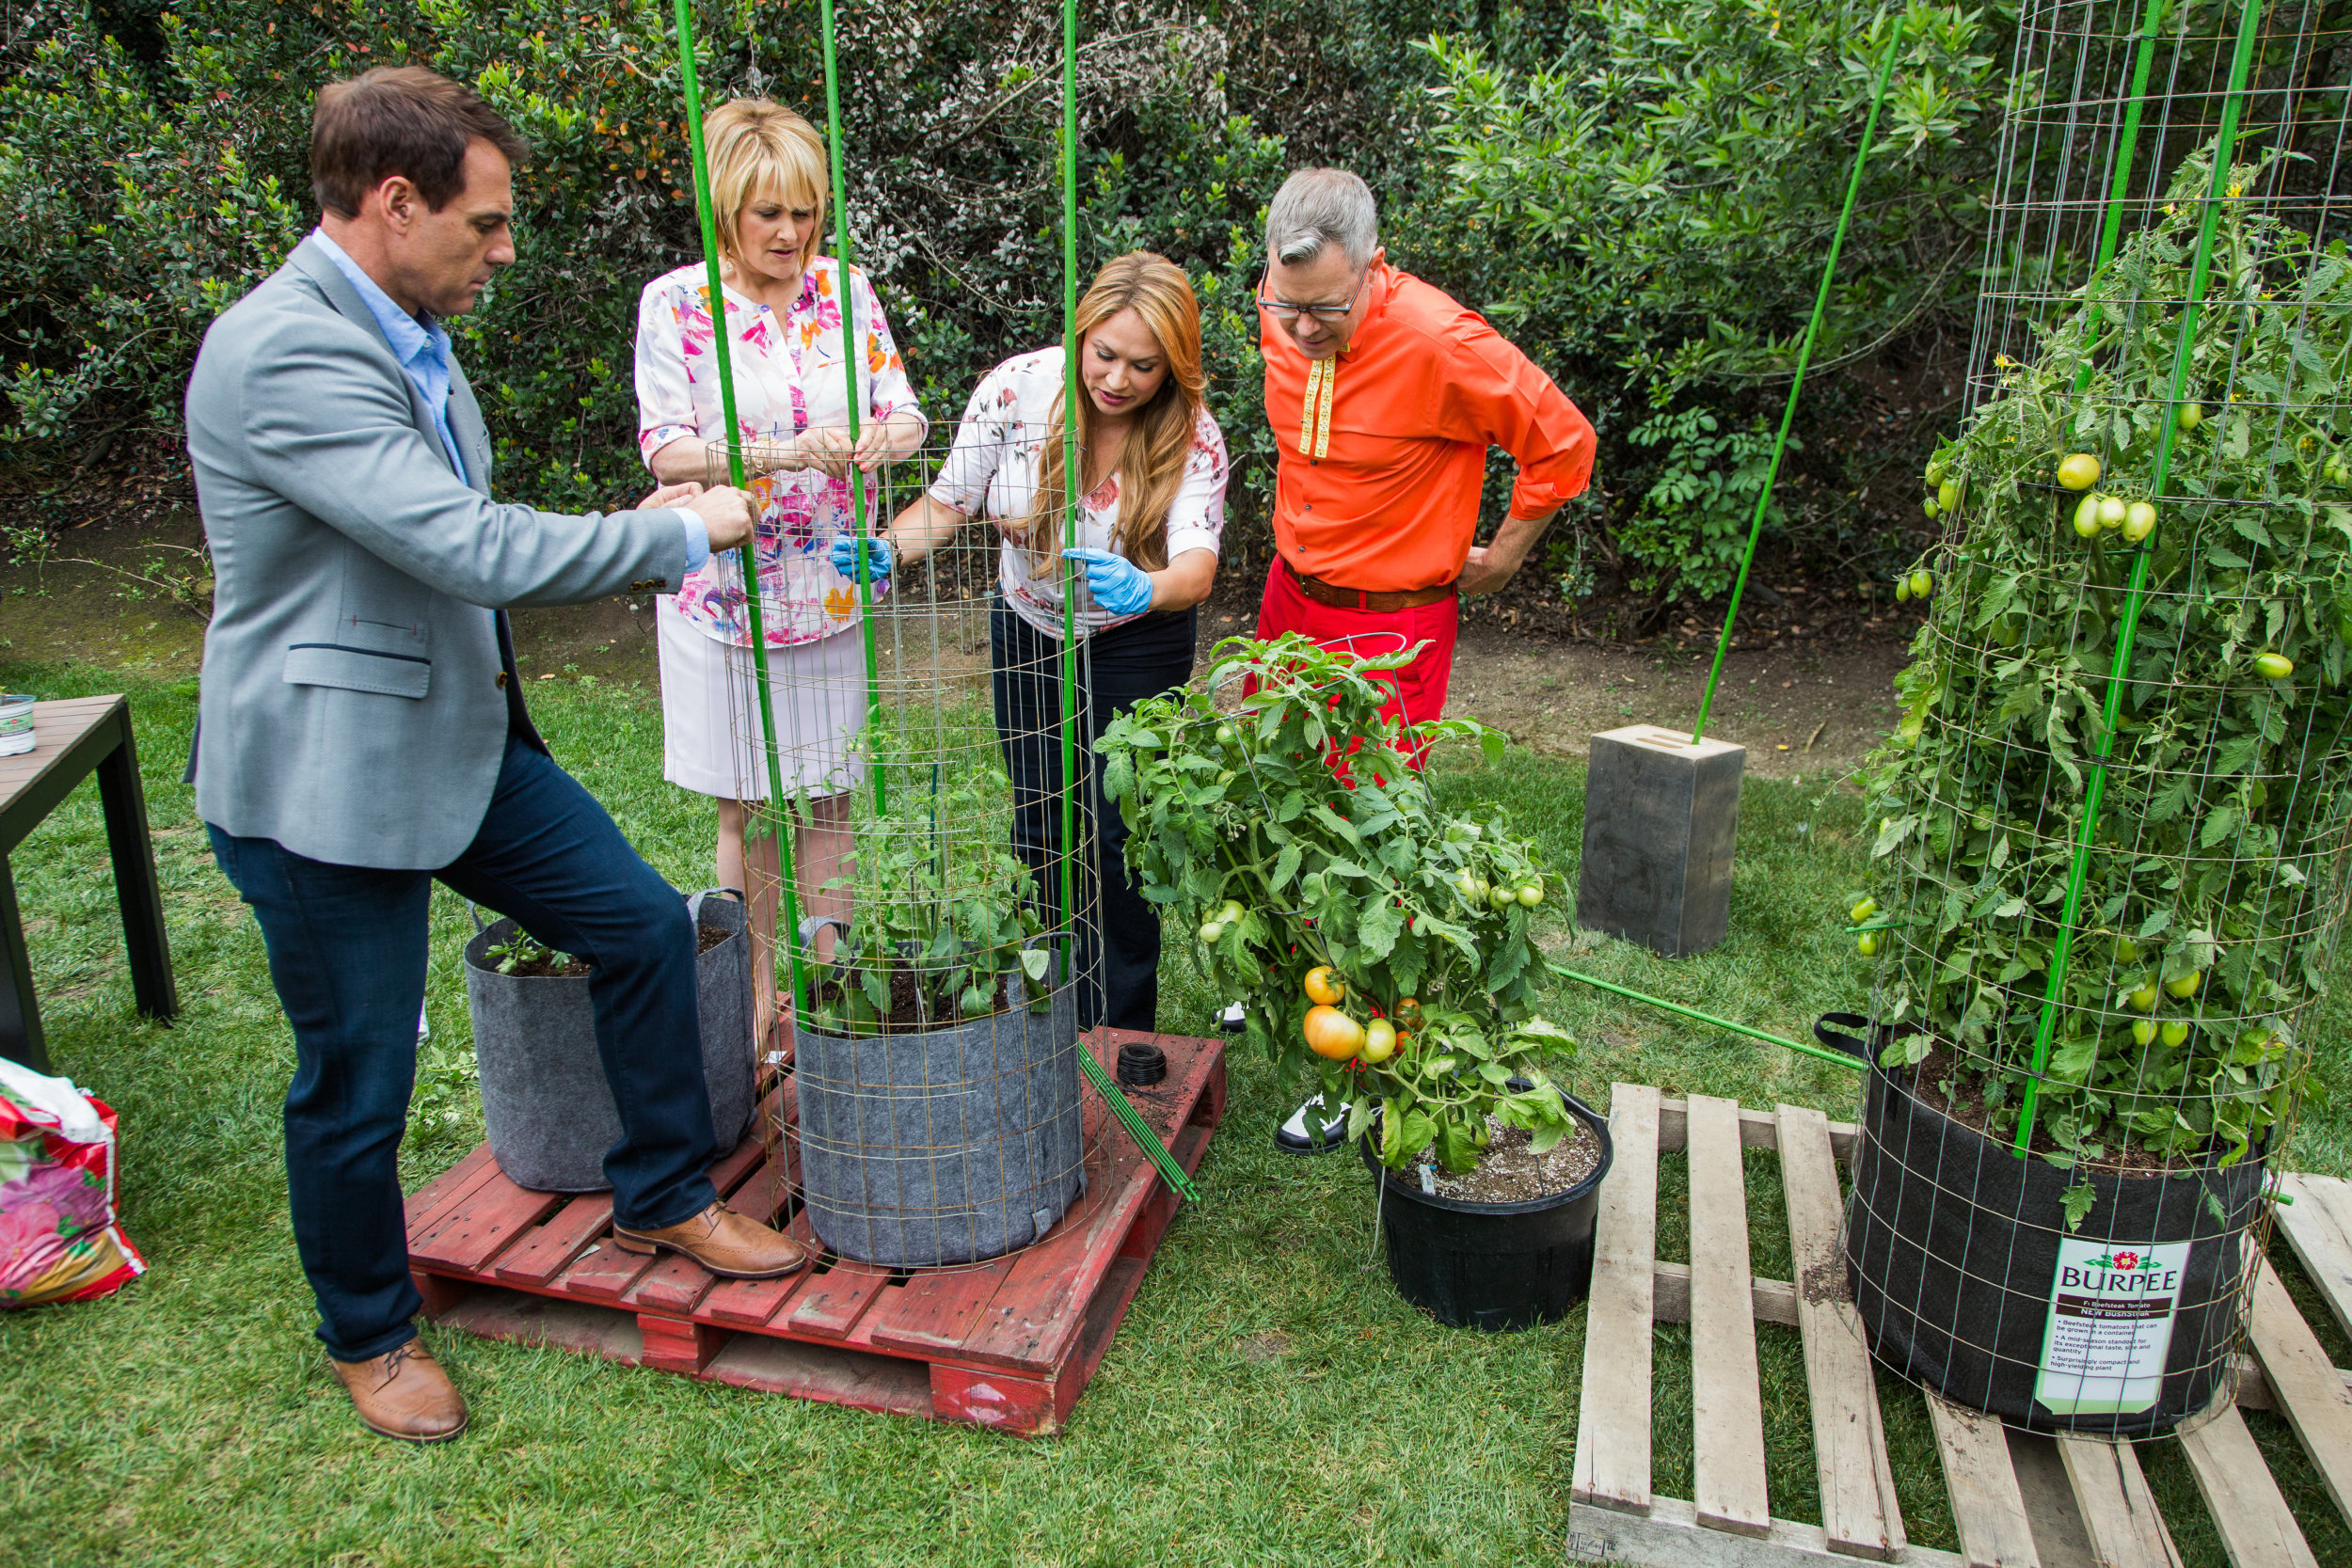 How To Grow Tomatoes Video Hallmark Channel